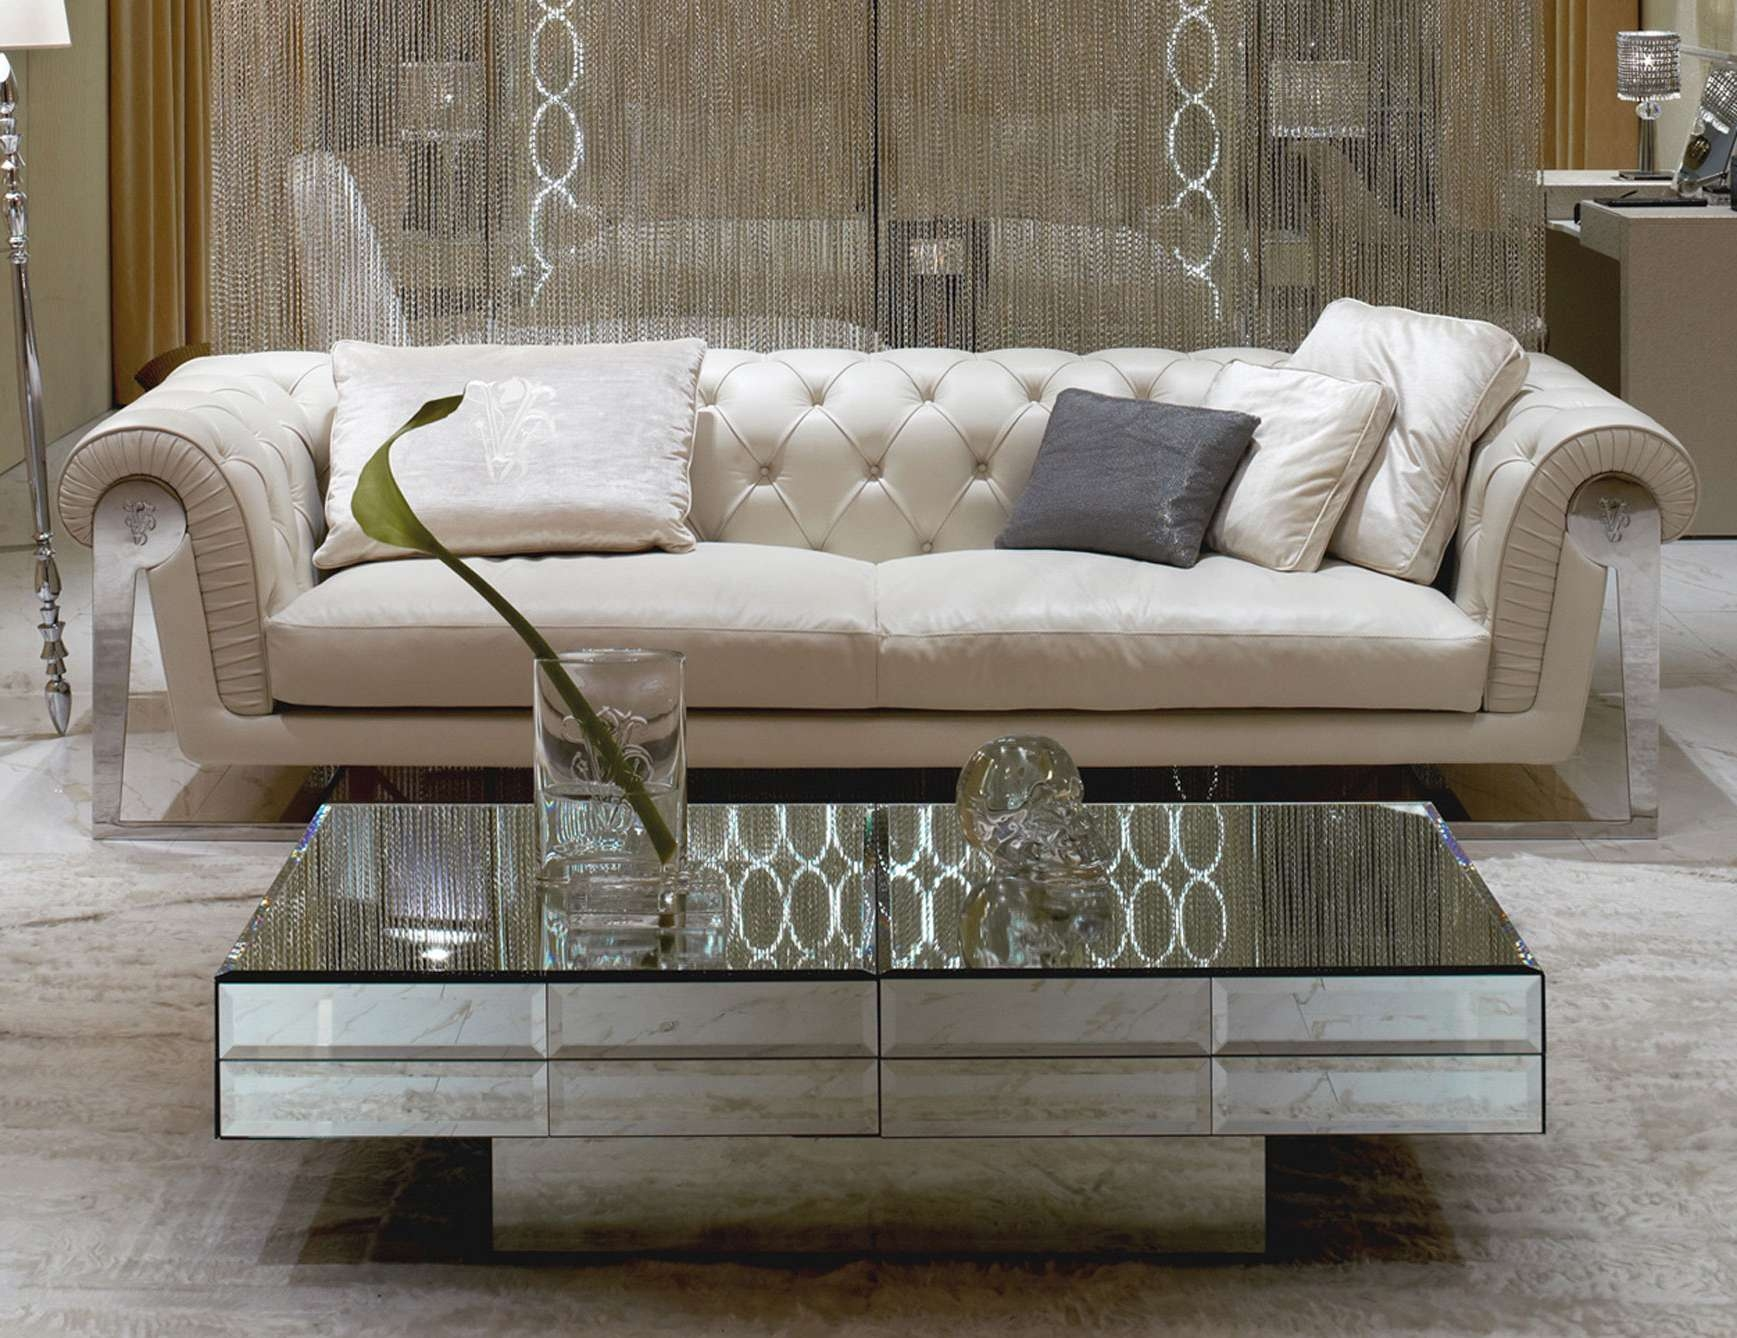 2017 Low Rectangular Coffee Tables With Furniture: Fancy Gray Fabric Modern Living Set With Rectangular (View 2 of 20)